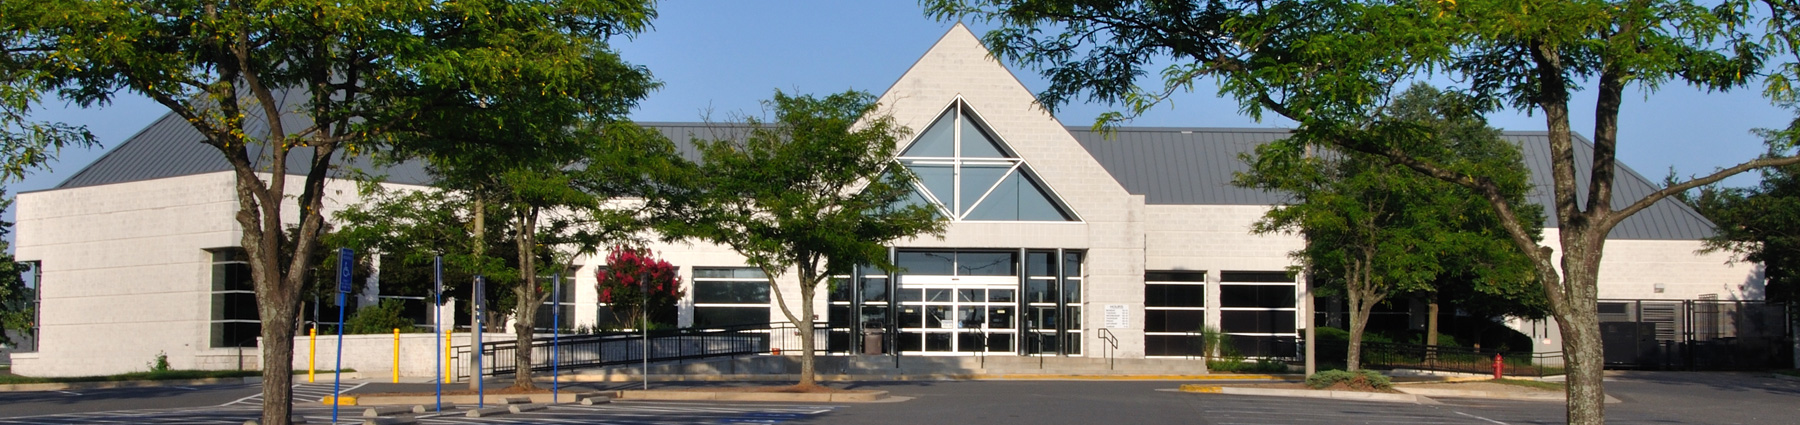 Centreville Regional Library